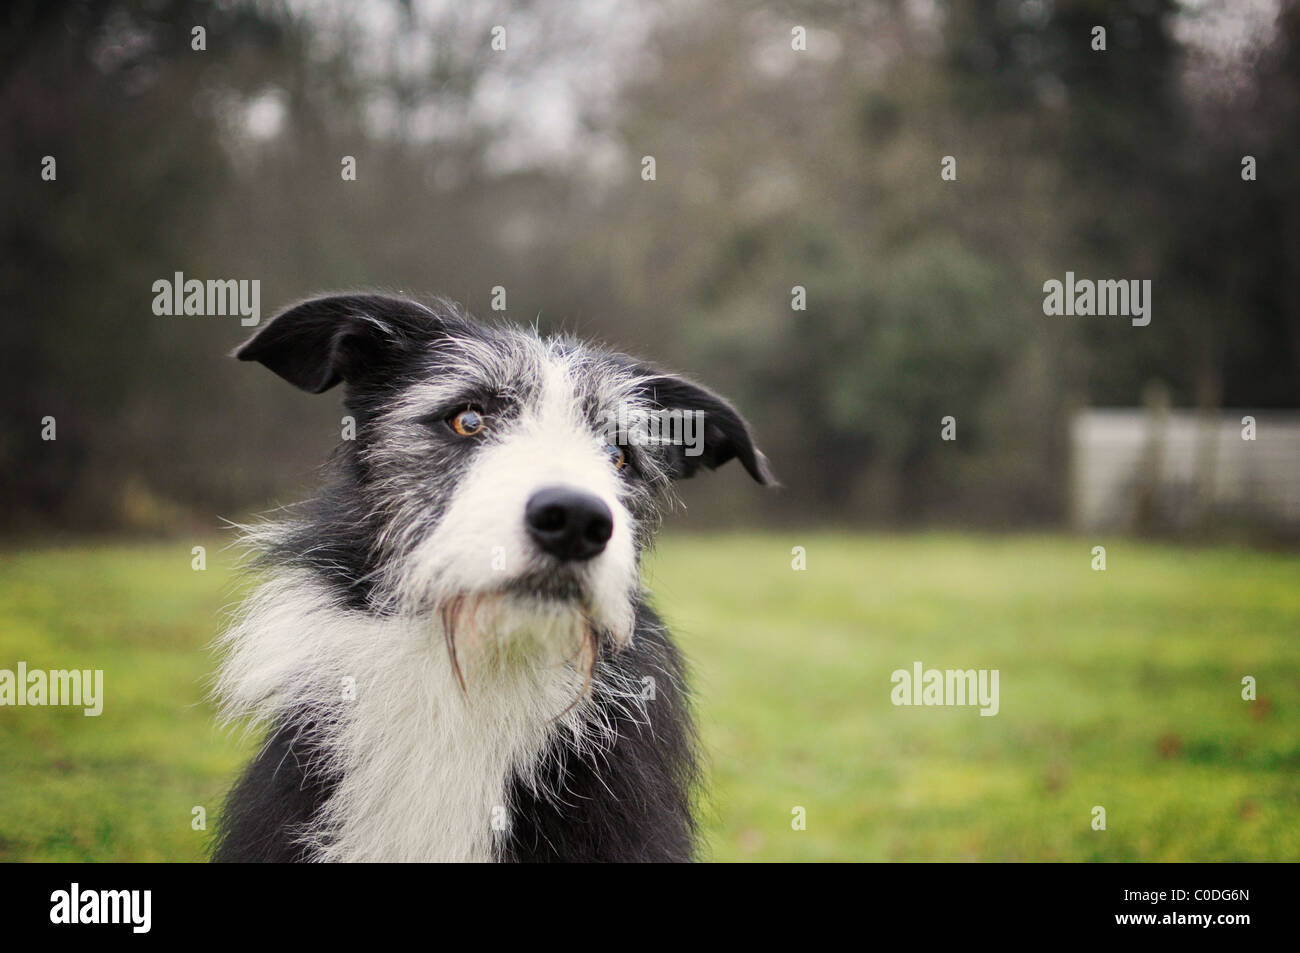 A dog sitting and waiting patiently - Stock Image